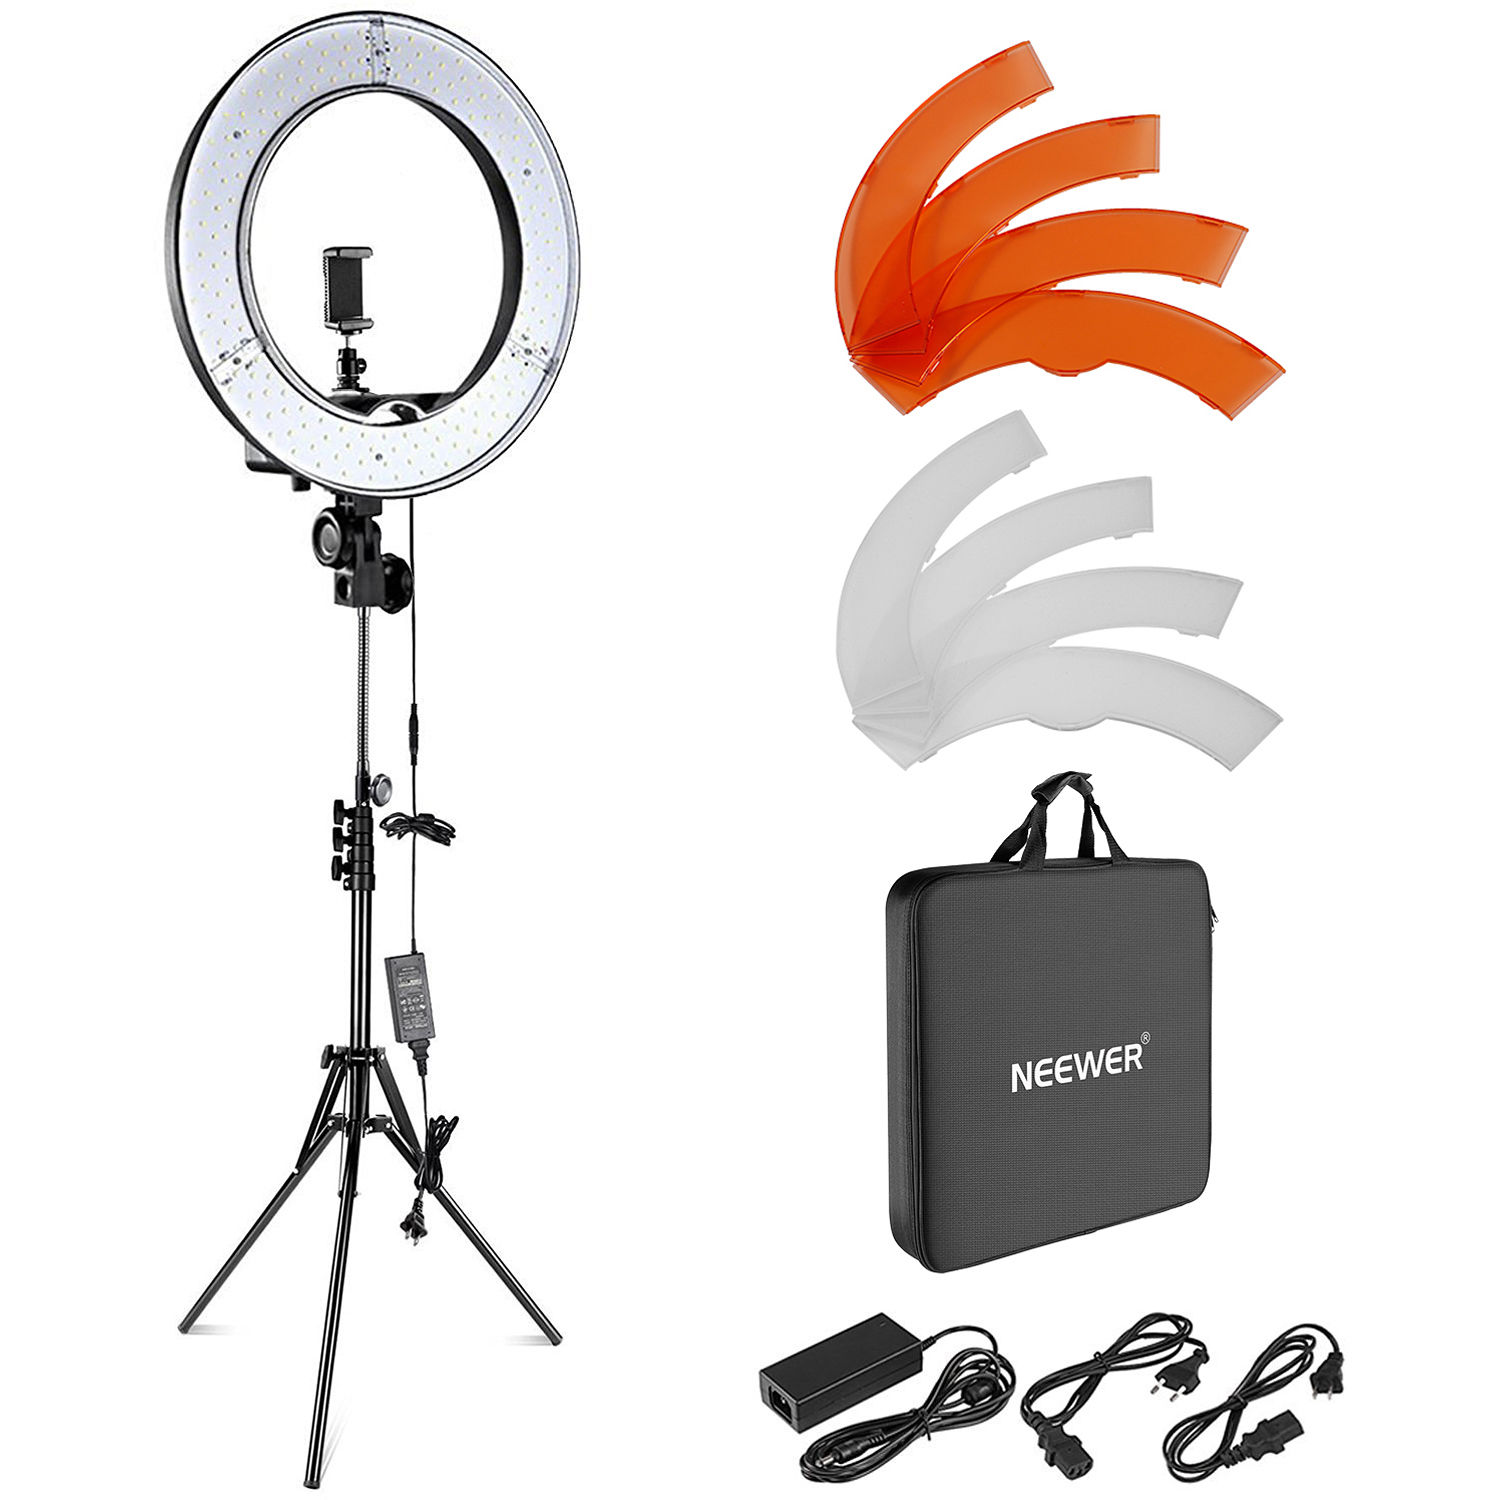 Neewer Led Ring Light With Stand And Accessories Kit 10088612 Lr Series Circuit An Ac Source Youtube 18